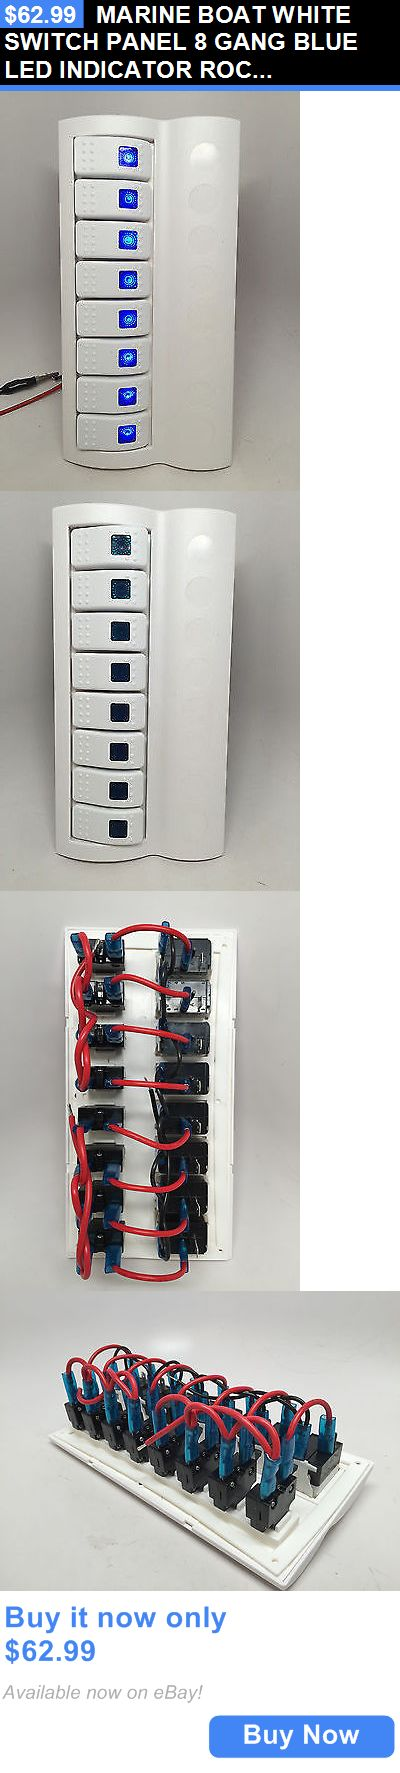 boat parts: Marine Boat White Switch Panel 8 Gang Blue Led Indicator Rocker Circuit Breaker BUY IT NOW ONLY: $62.99